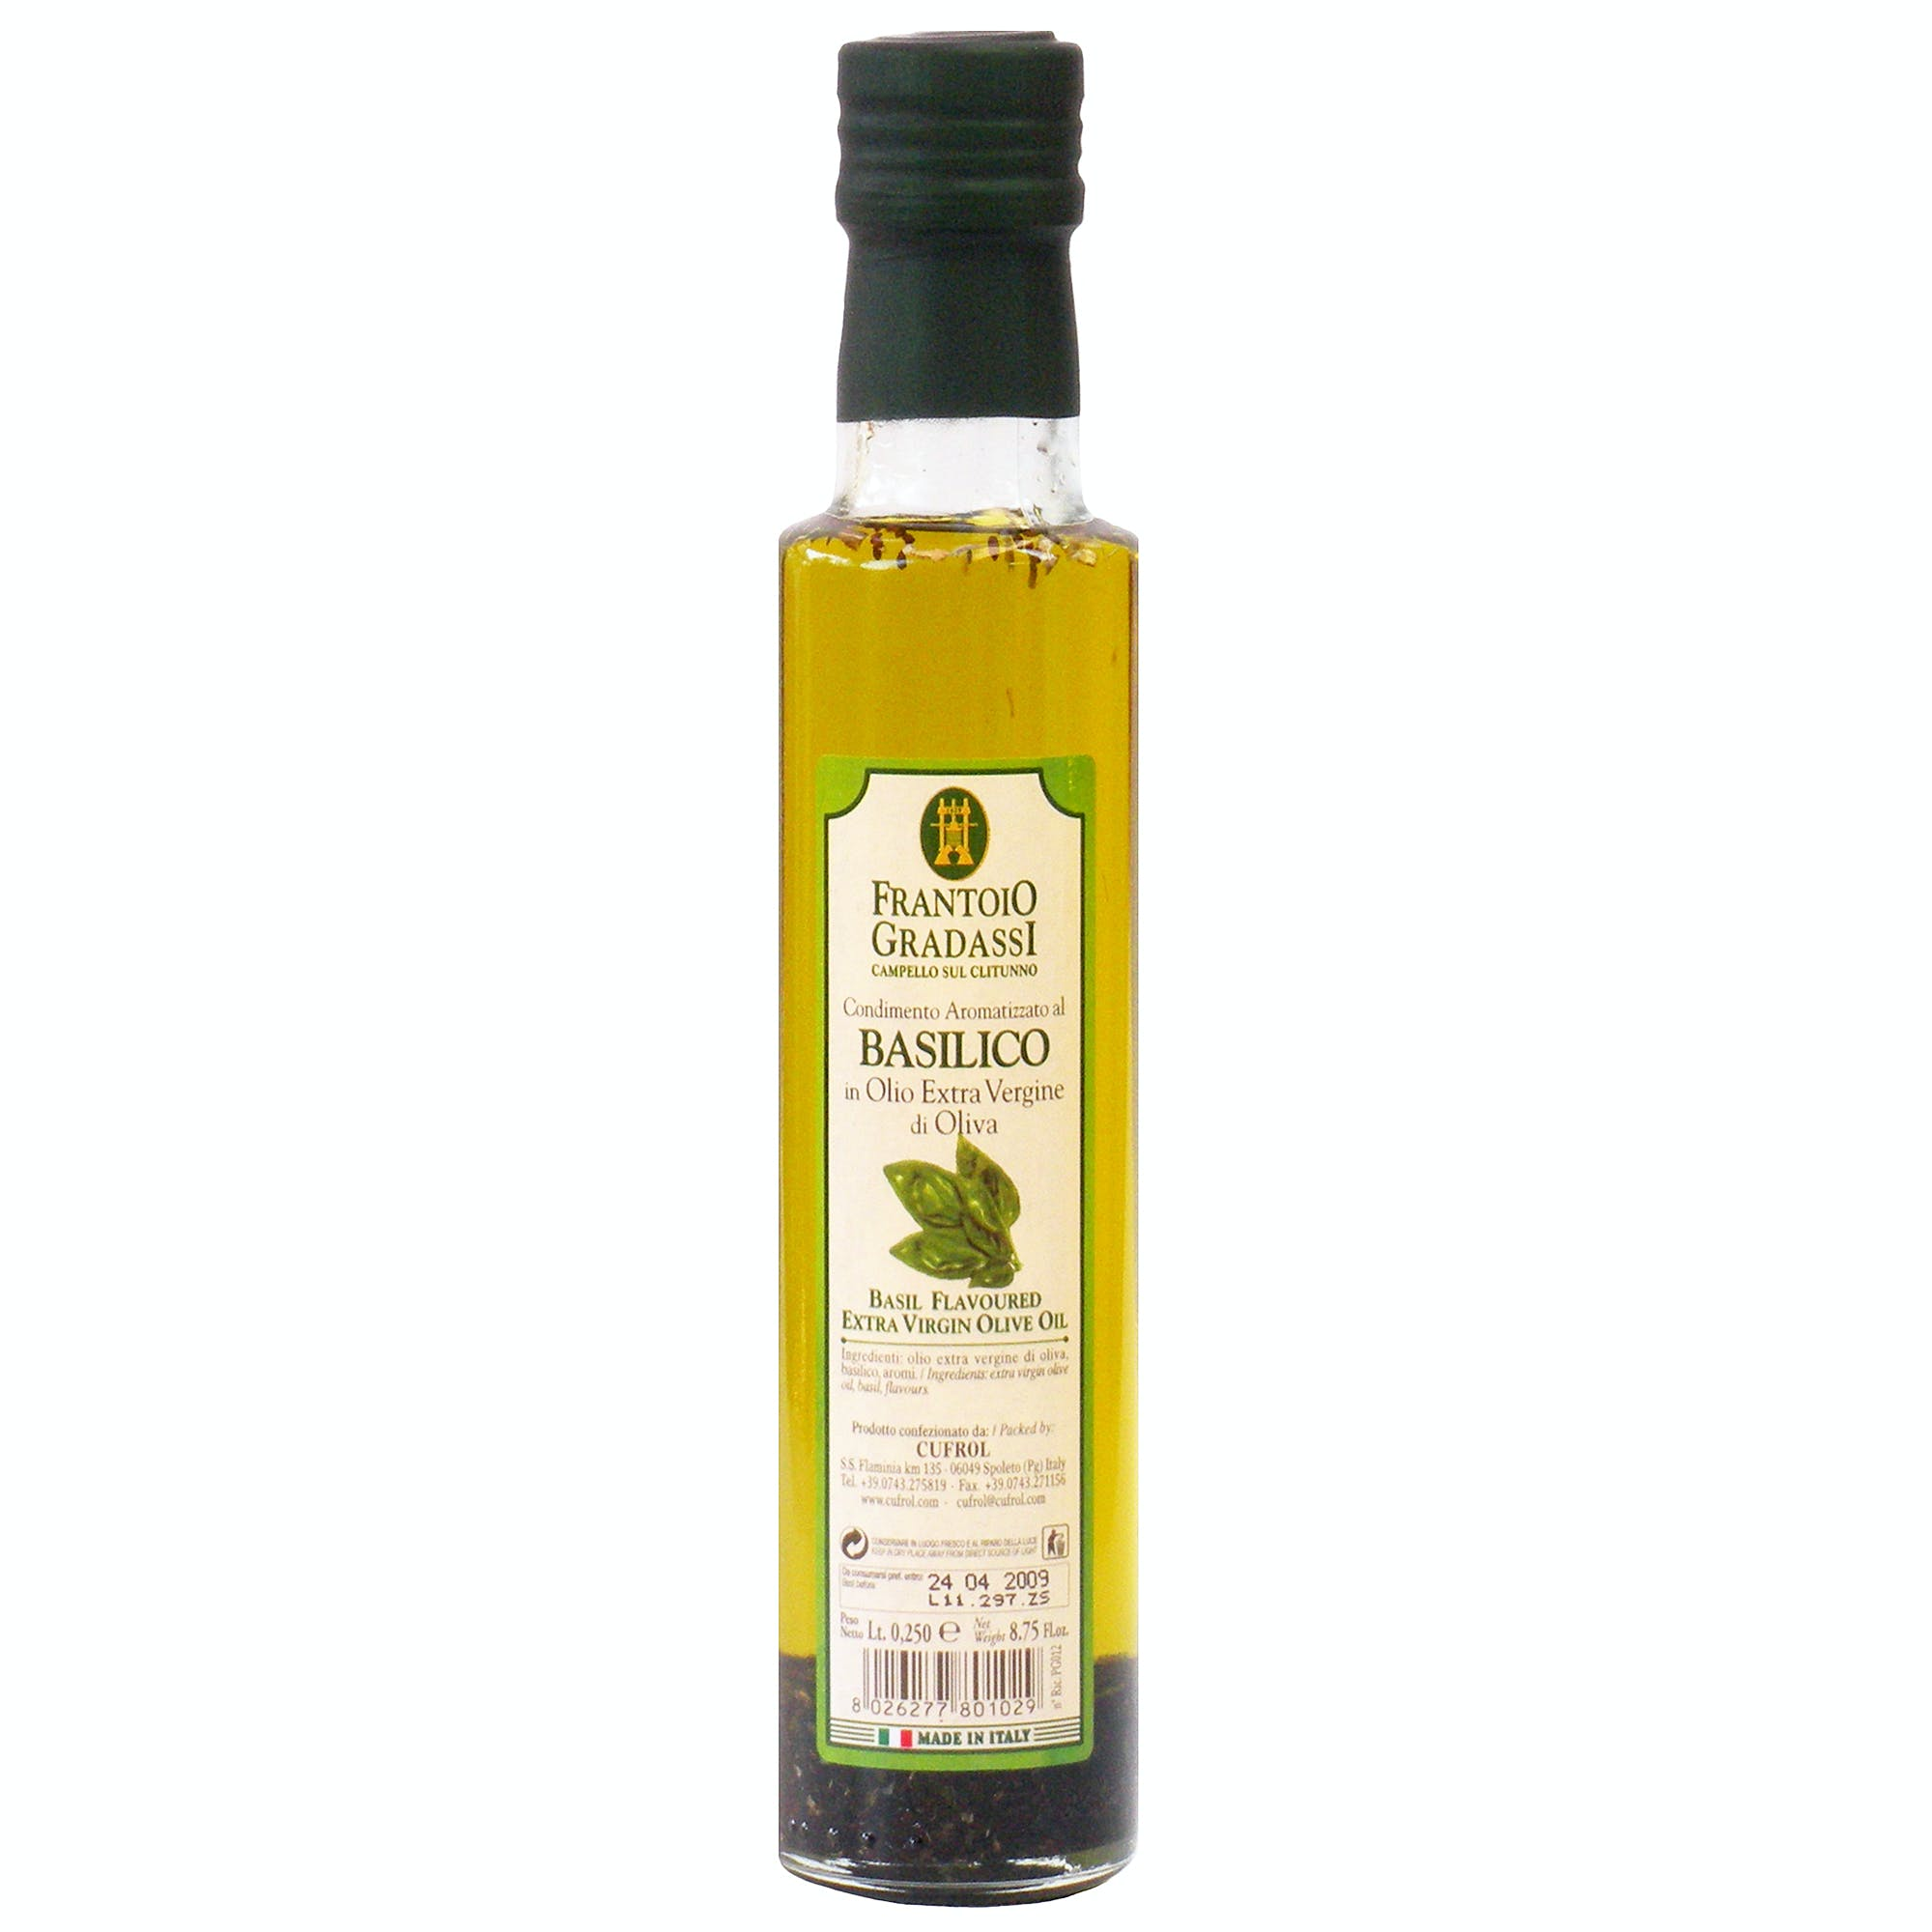 Italian Natural Basil Infused Extra Virgin Olive Oil Dressing From Cufrol, 8.5 Ounces Infused oil sold by M5 Corporation